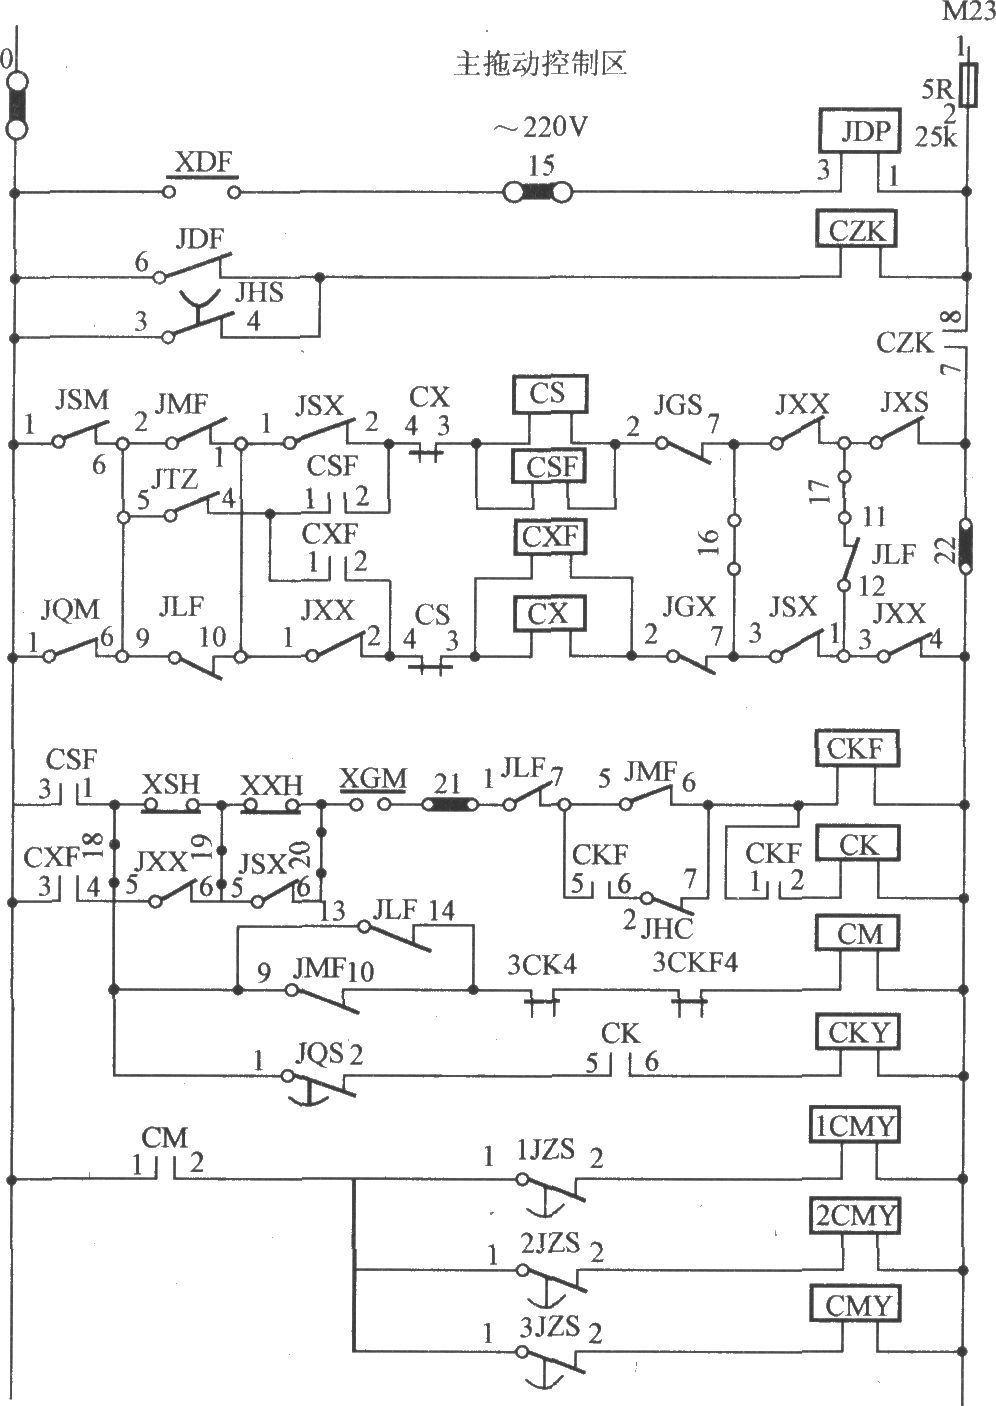 ea7b5 elevator control wiring diagram digital resources simple basic elevator diagram lift control wiring diagram search